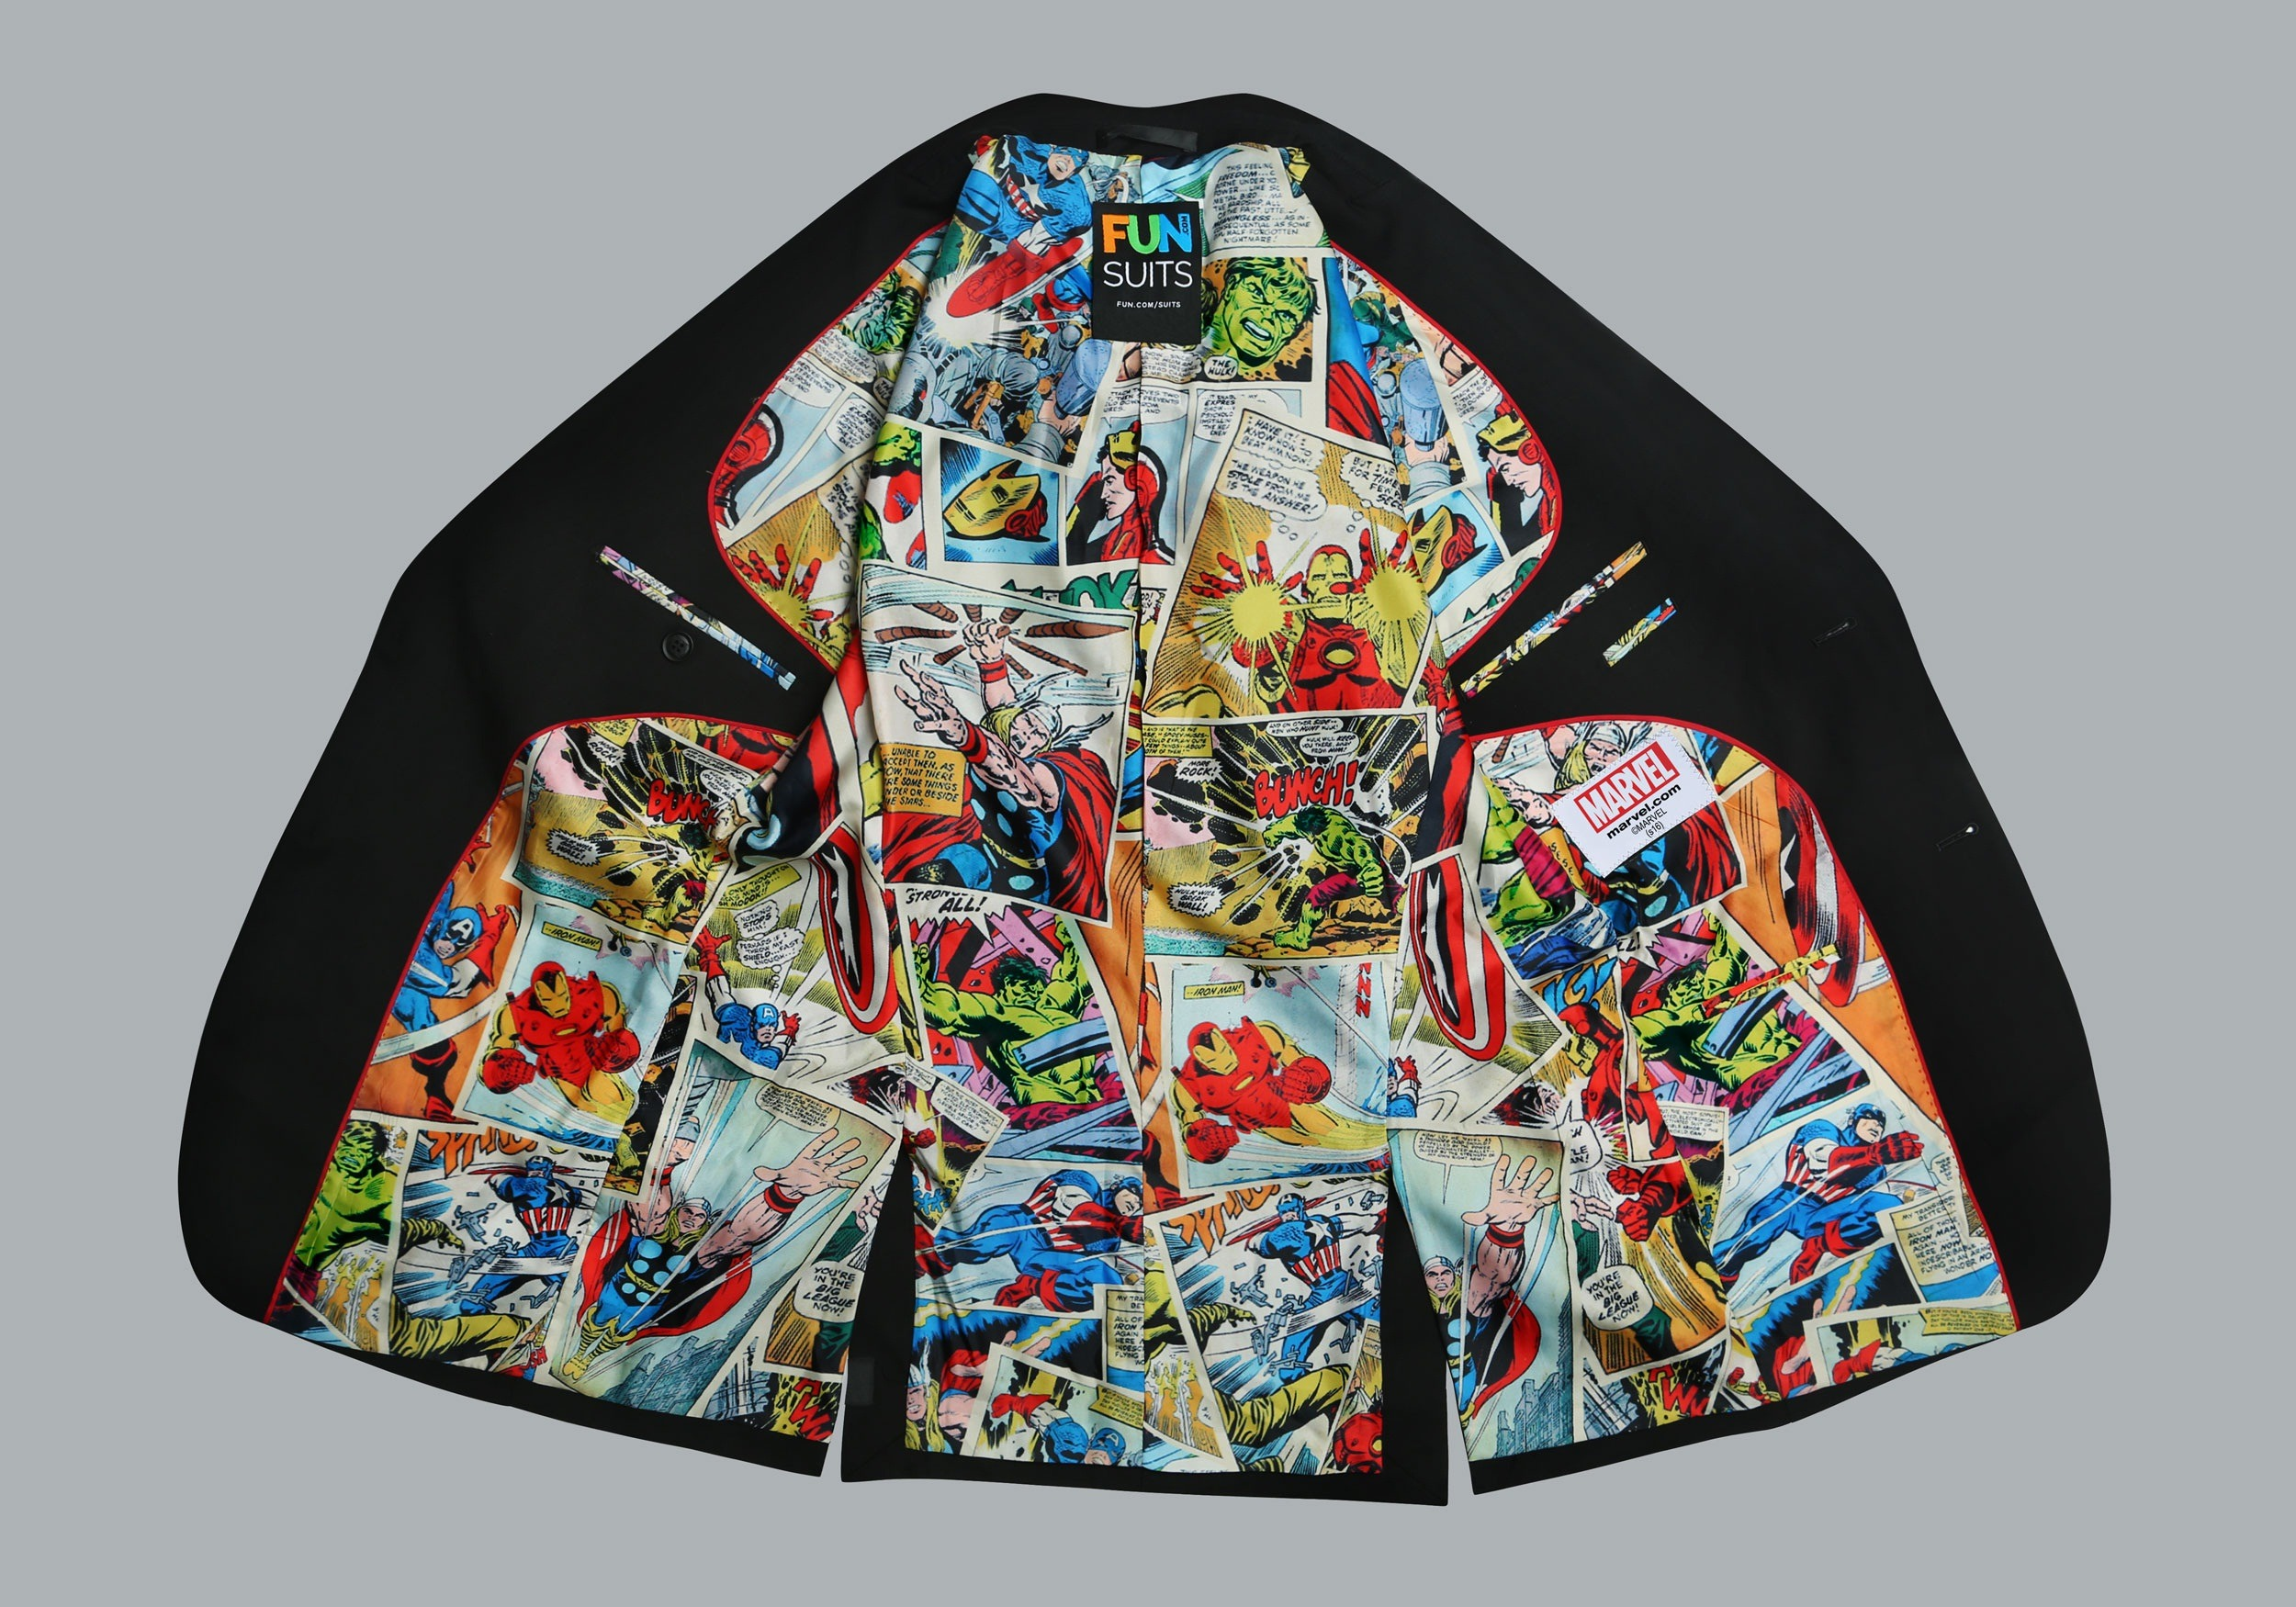 Marvel Comic Strip Suit (Secret Identity)